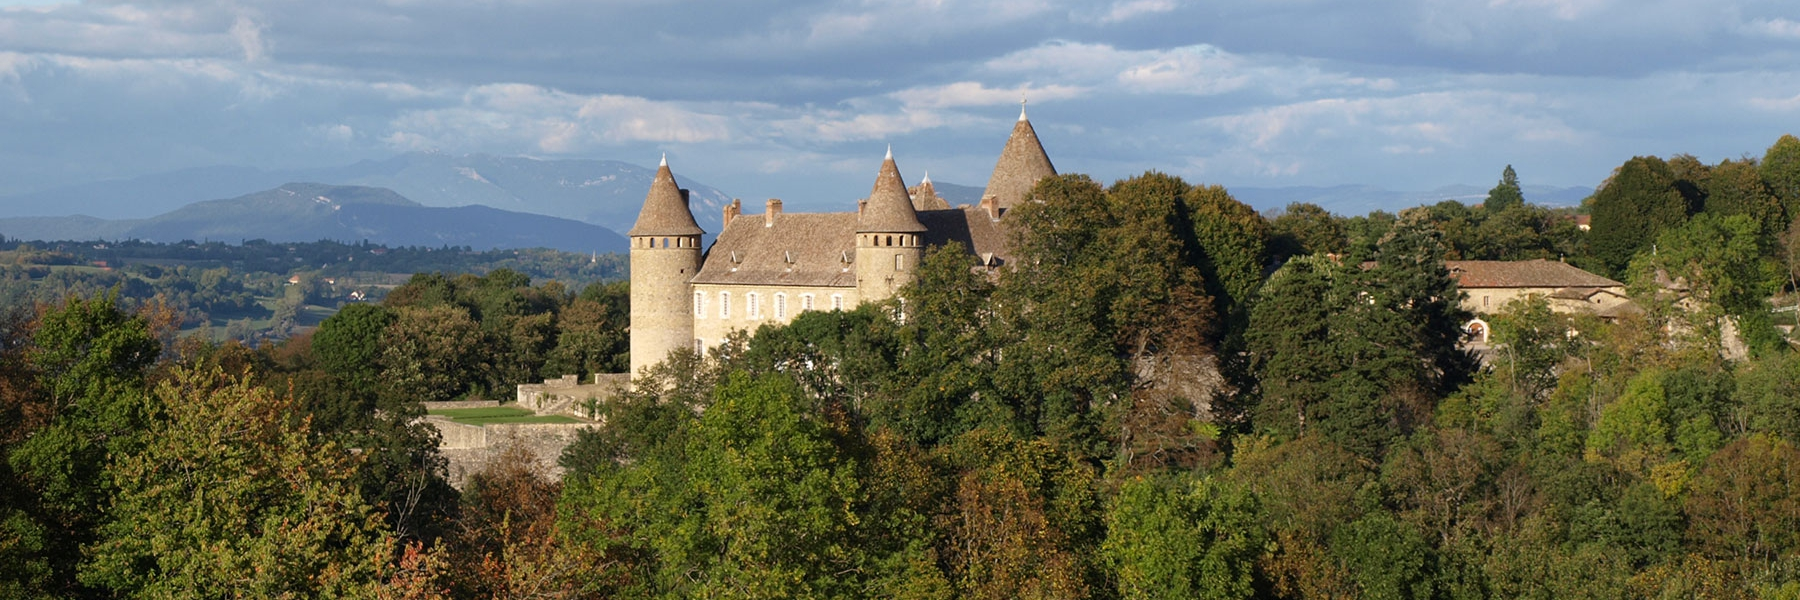 chateaux-incontournables-vals-dauphine_1800x600_acf_cropped